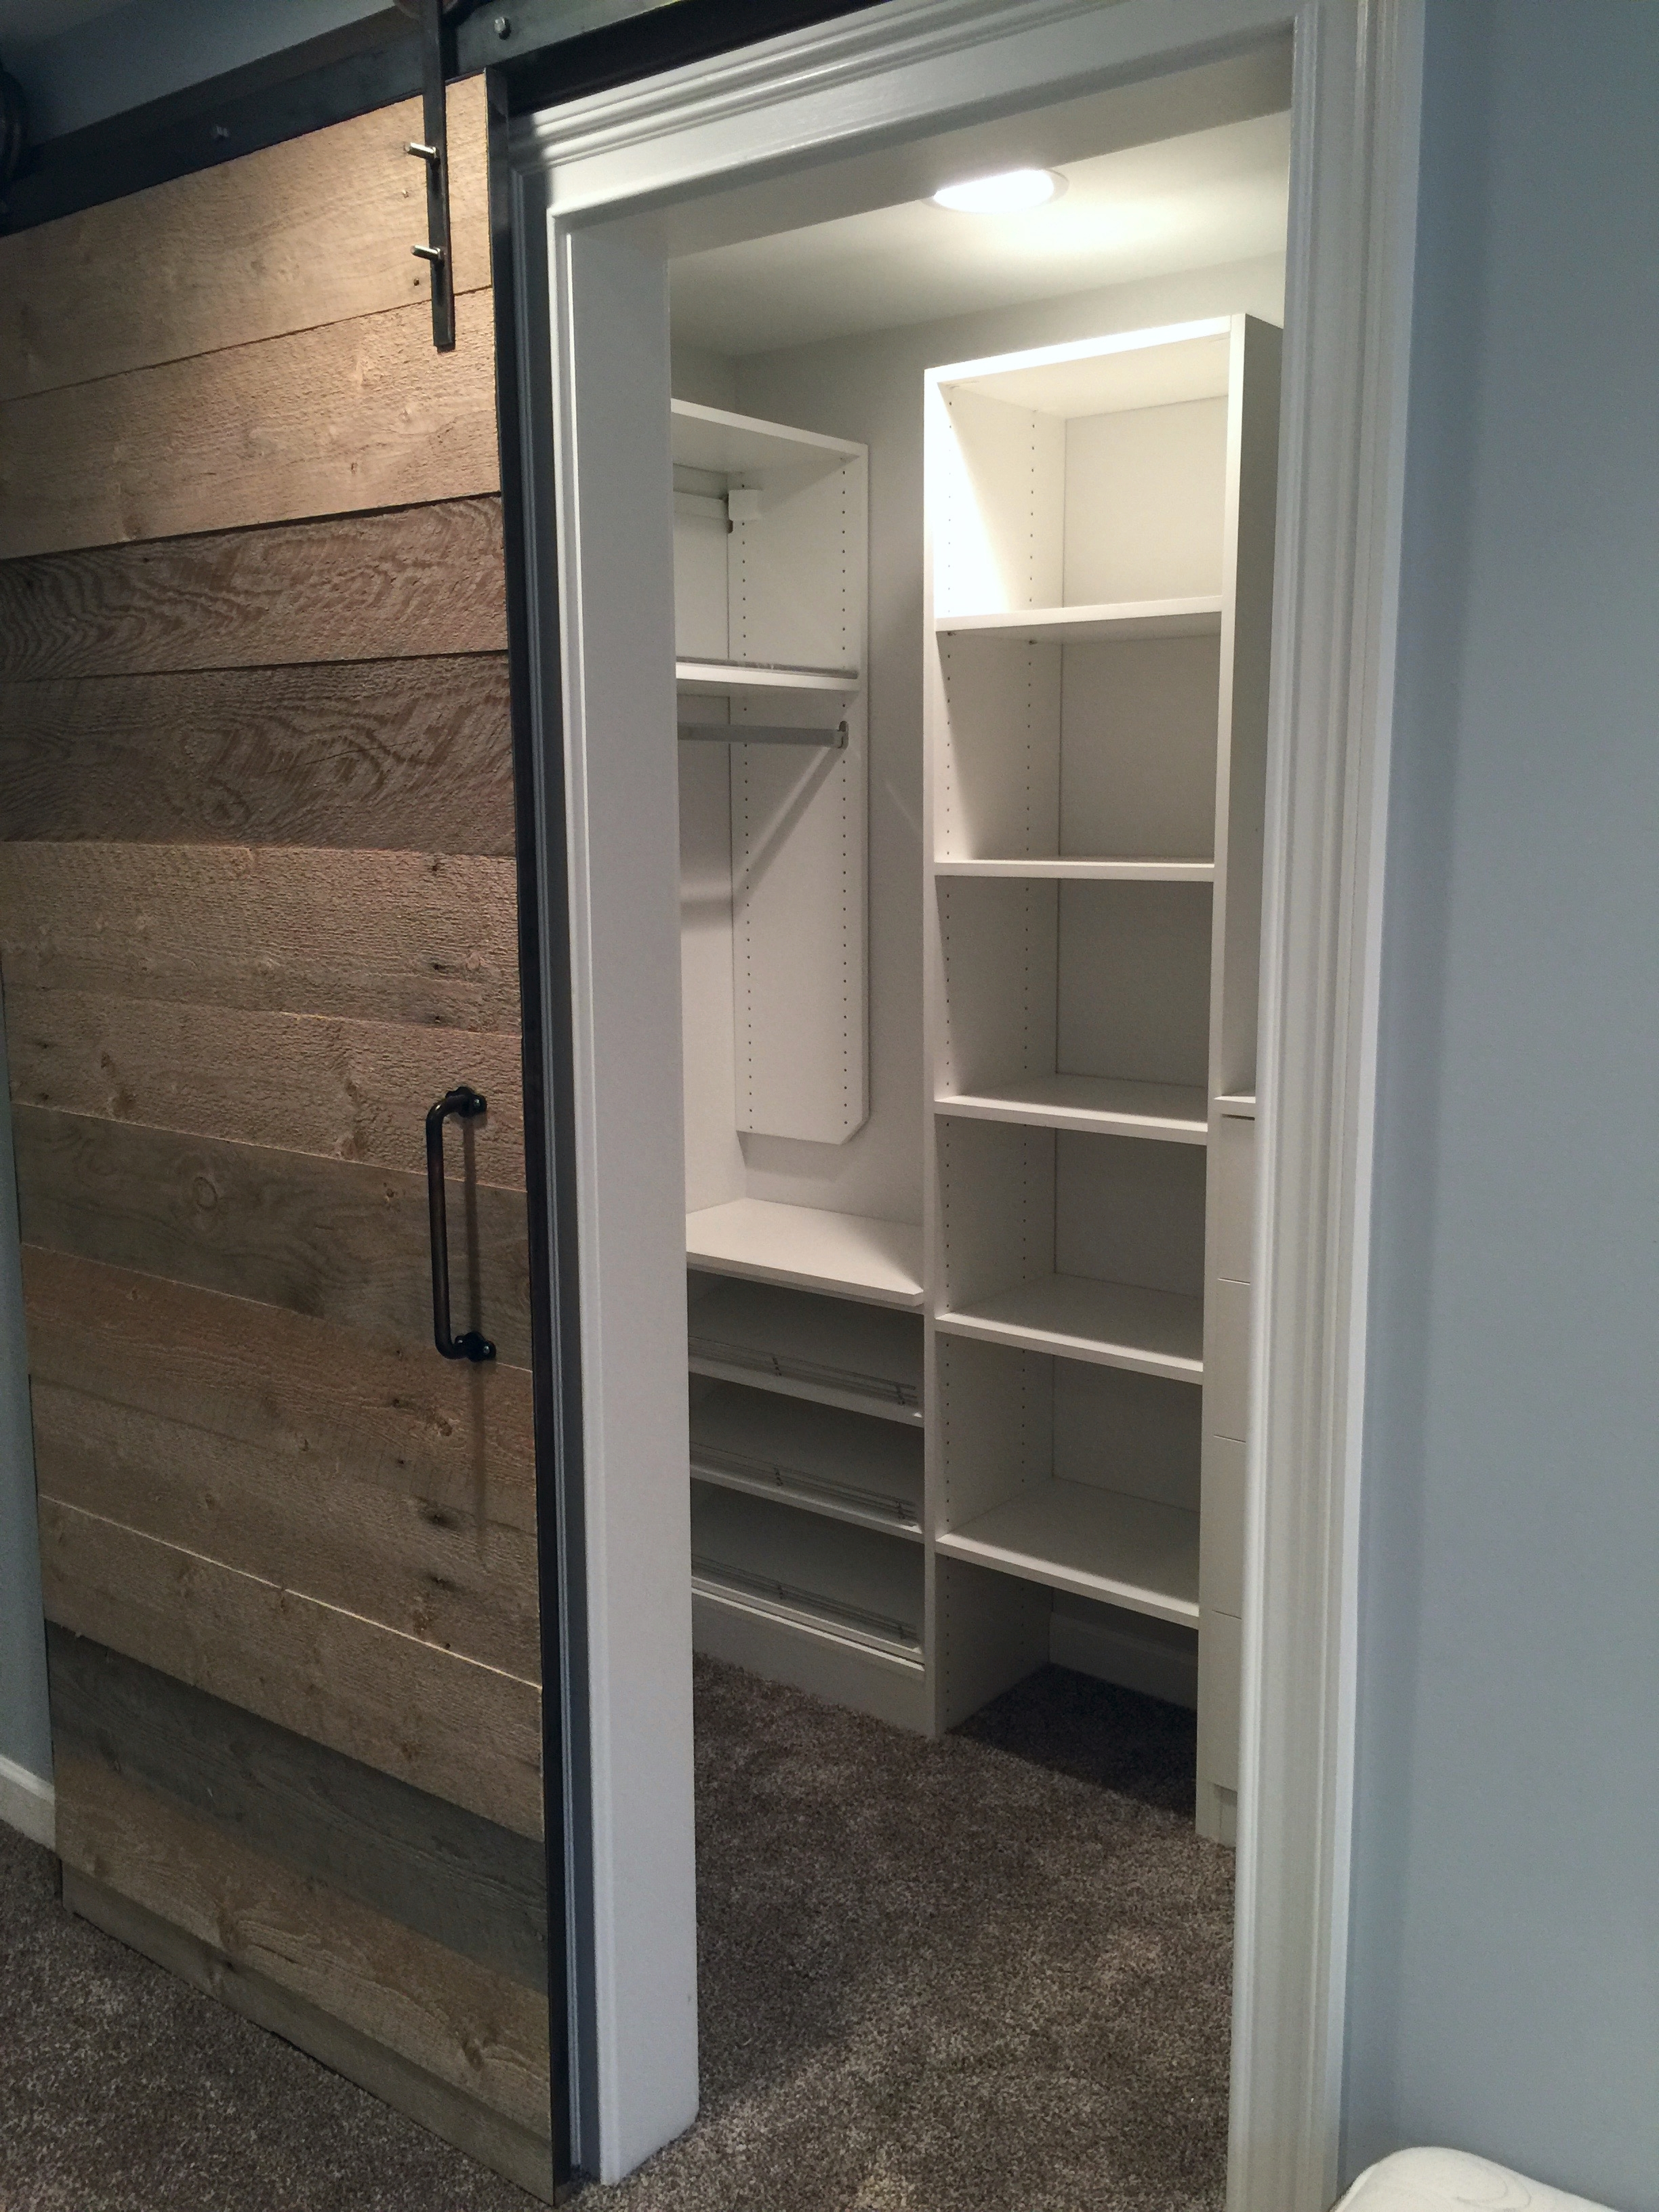 The basement bedroom closets are accessed by custom barn doors made in Utah.